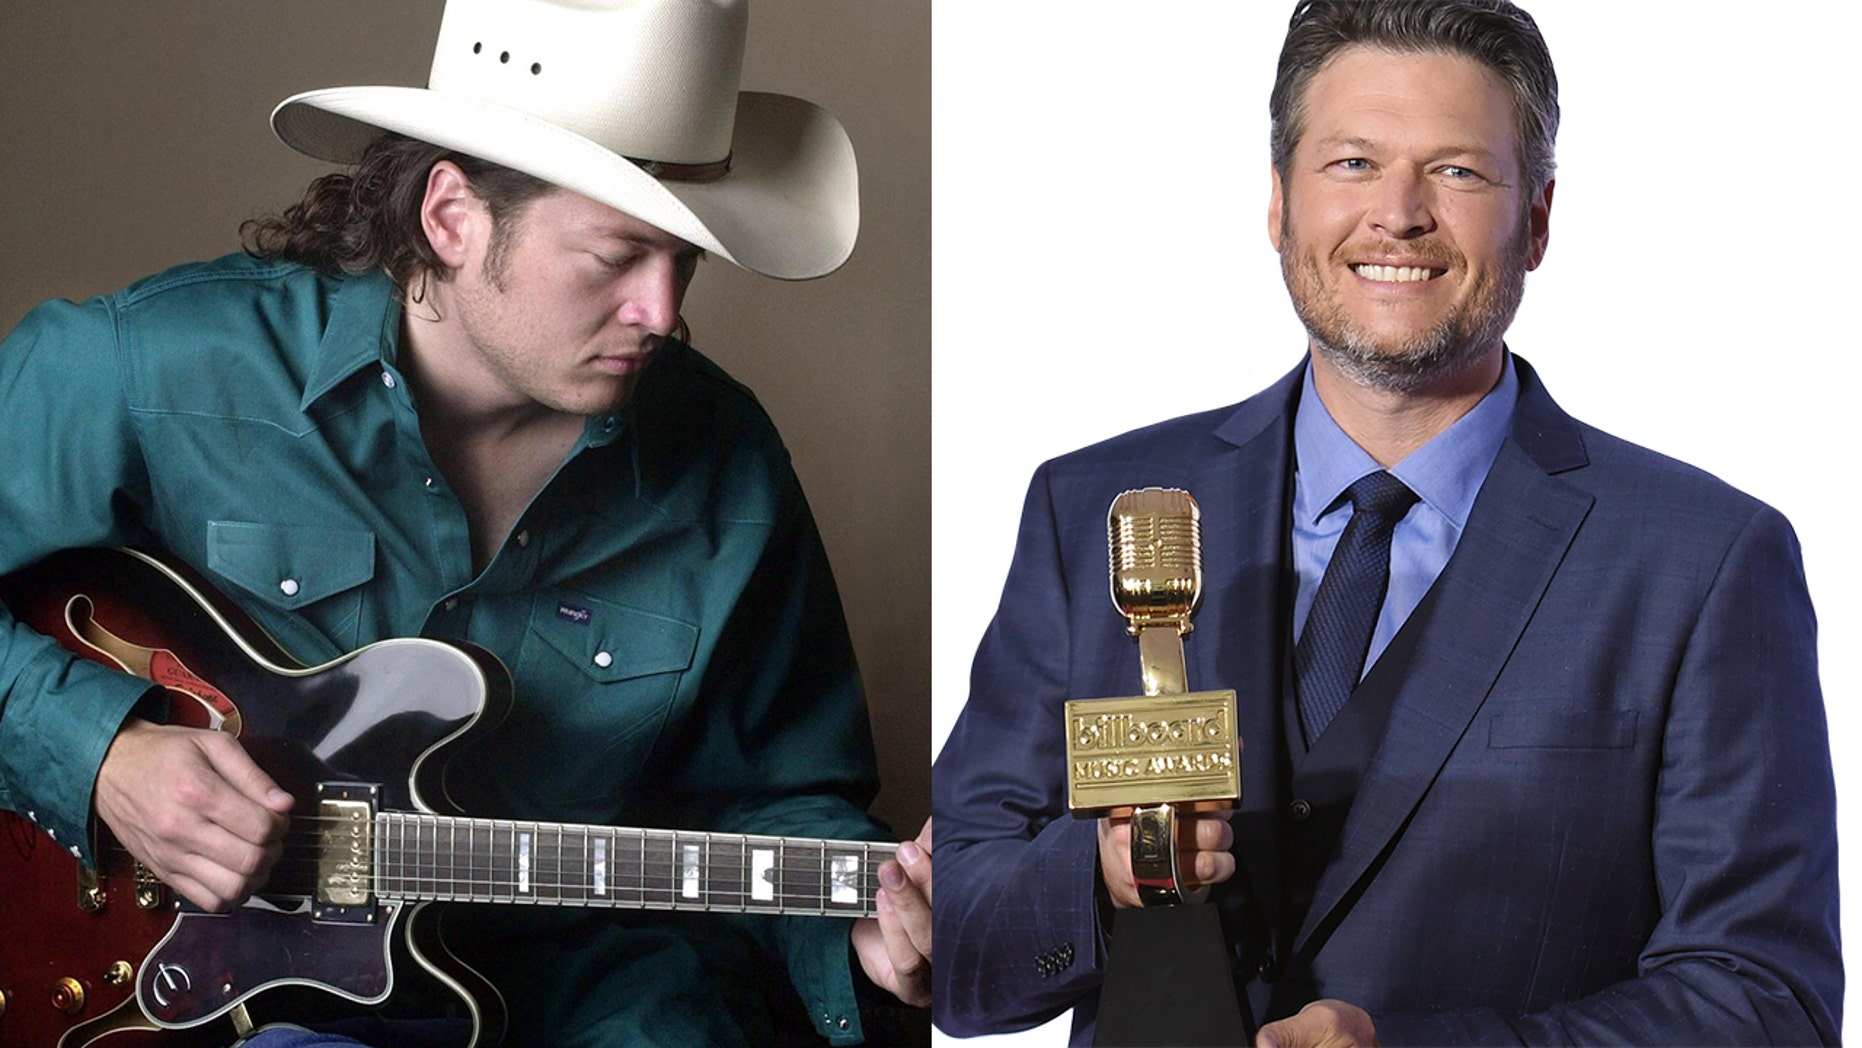 How Did Blake Shelton Go From Small Town Oklahoma To Country Superstar